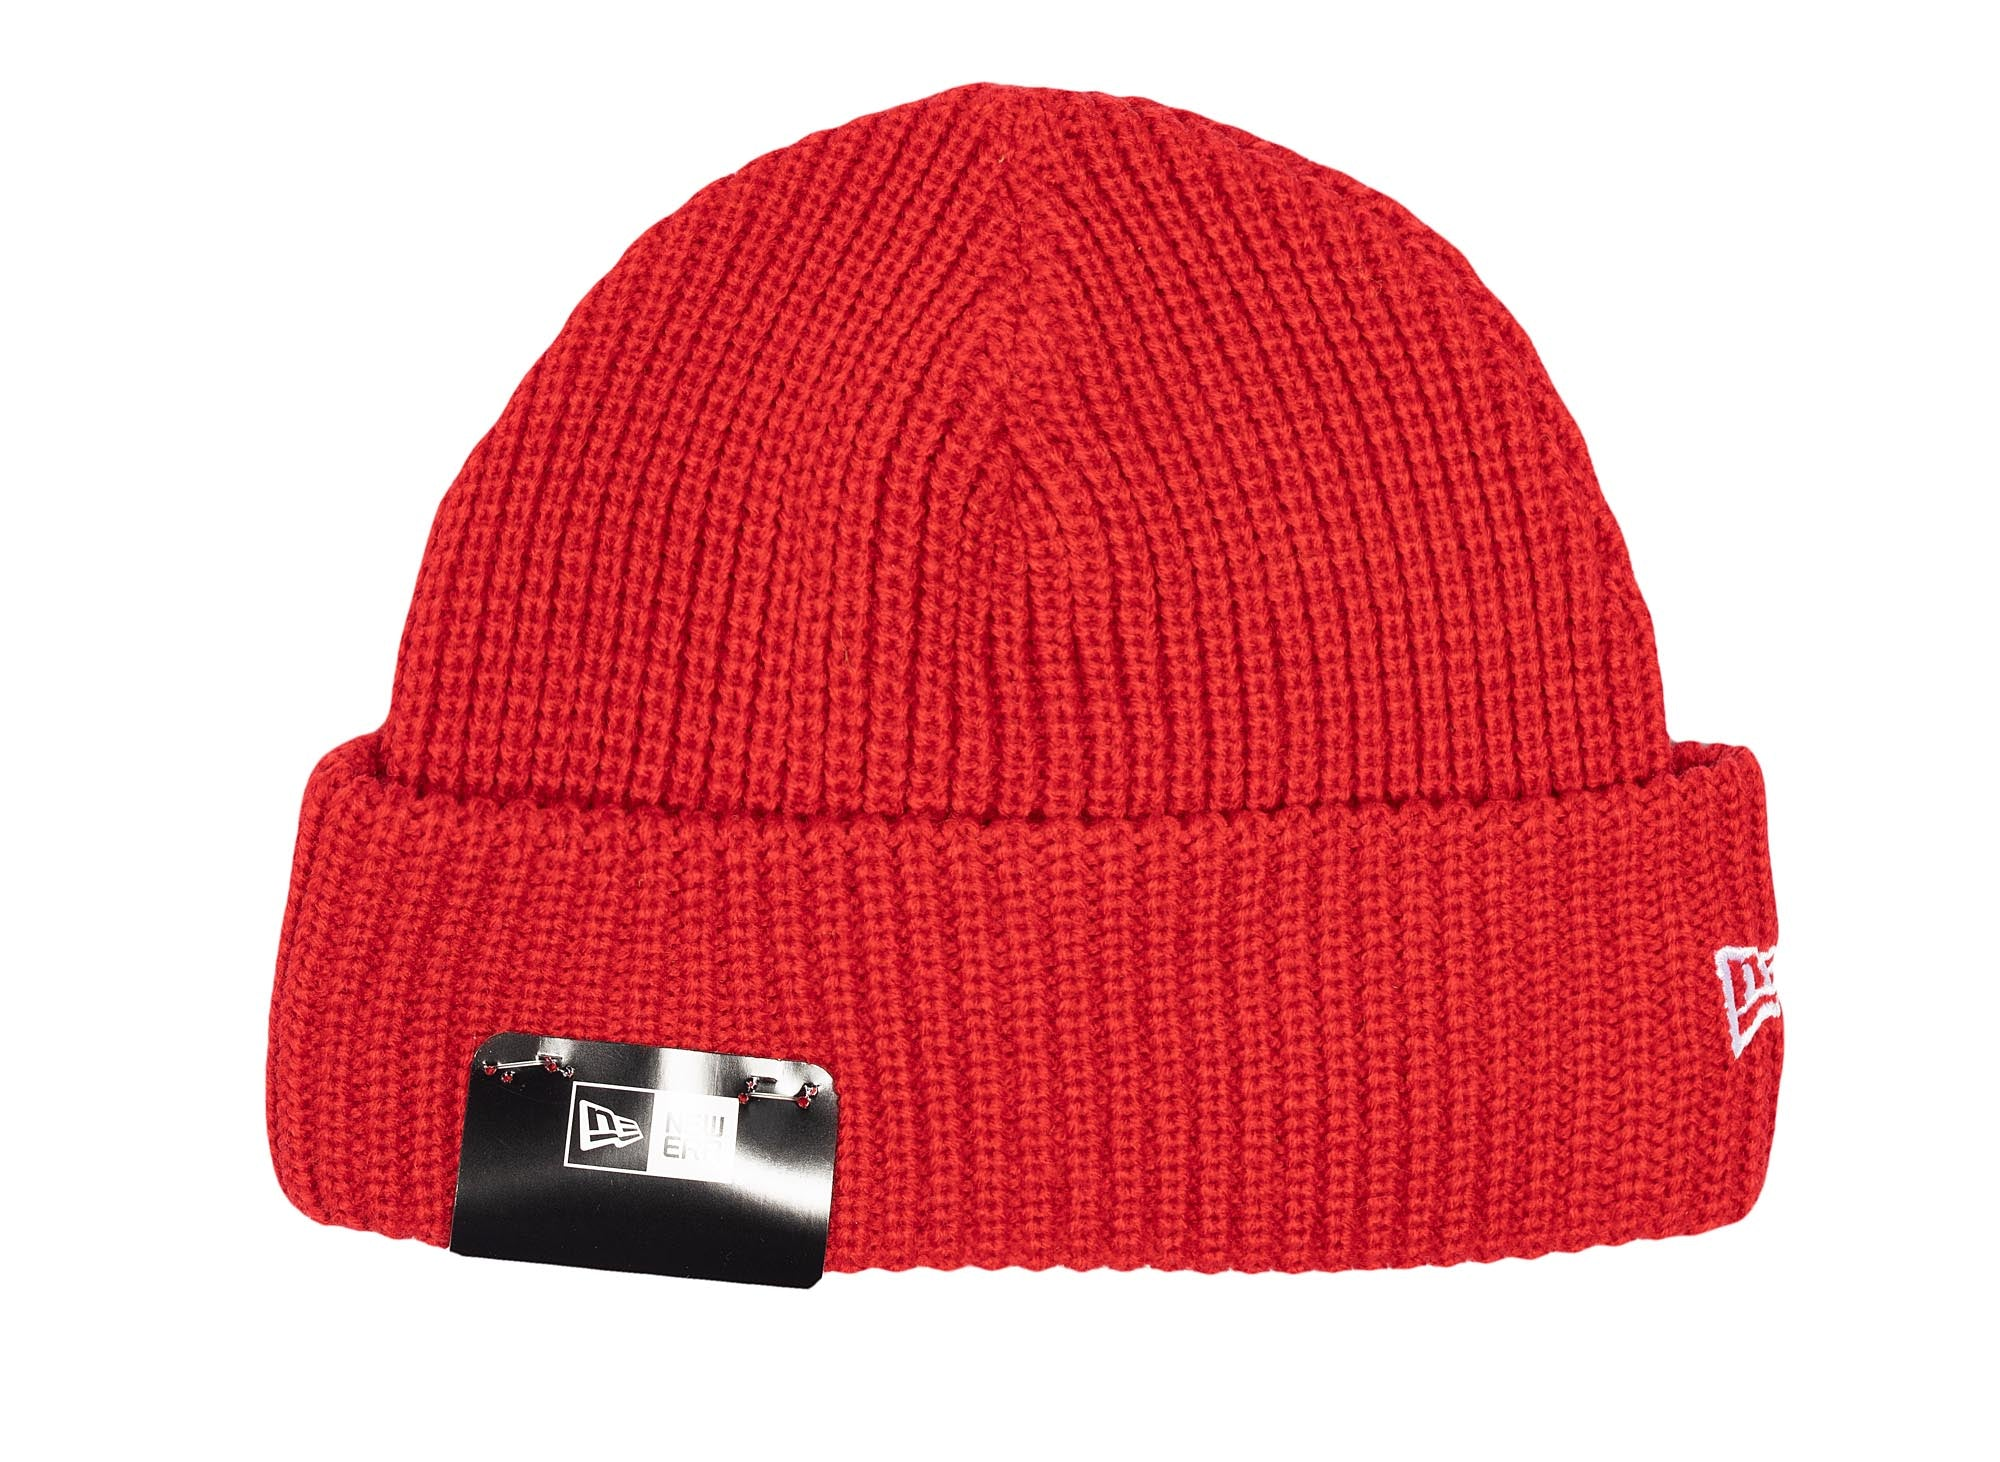 New Era Cuff Knit Beanie 'Red'